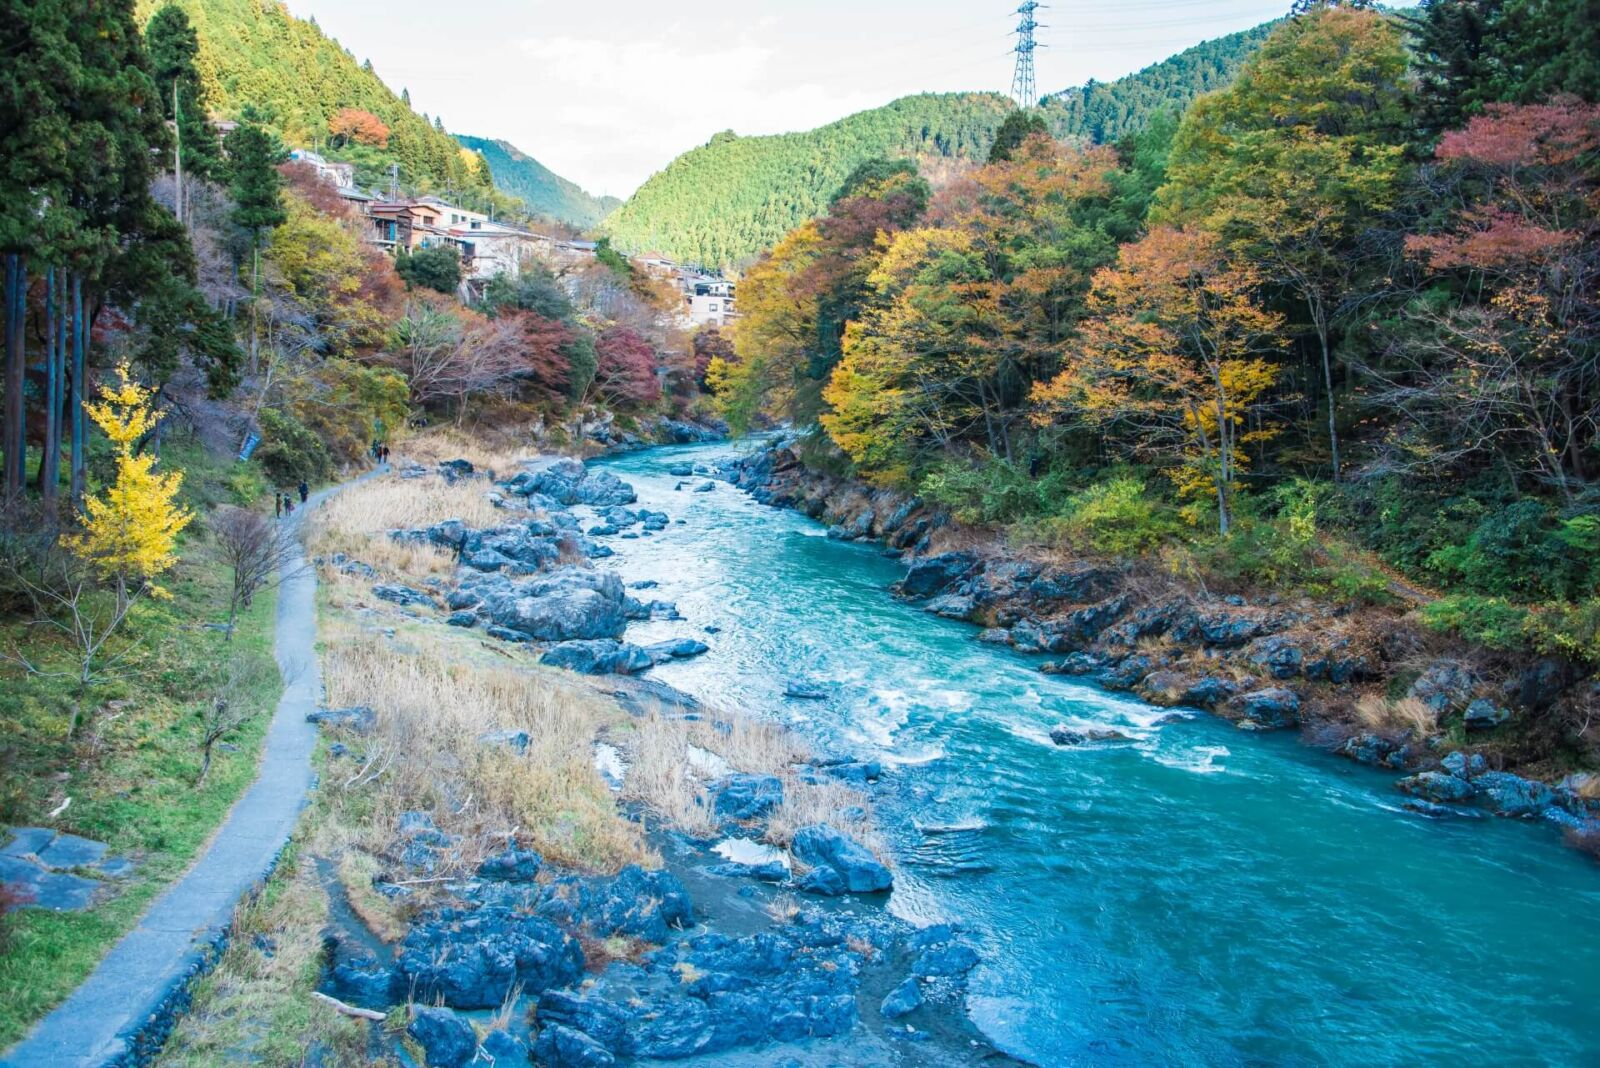 Where to Stay in the Kiso Valley & Nakasendo?